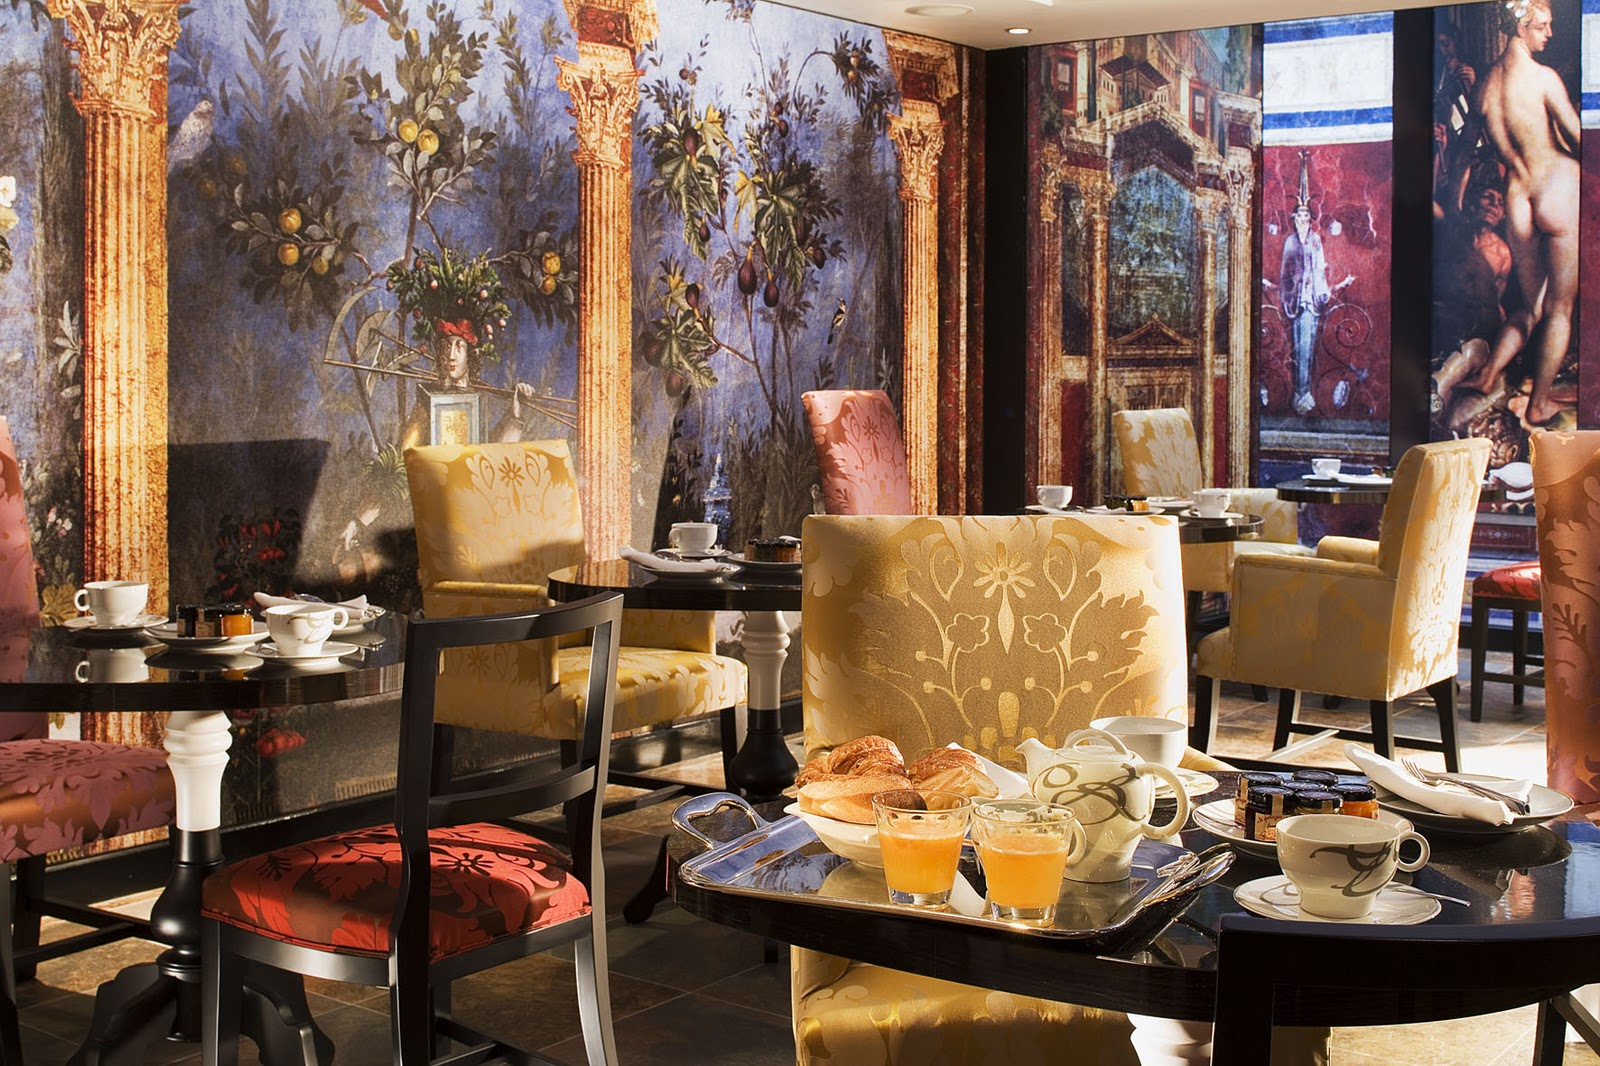 Mille feuille hotel bellechasse by christian lacroix Hotel christian lacroix